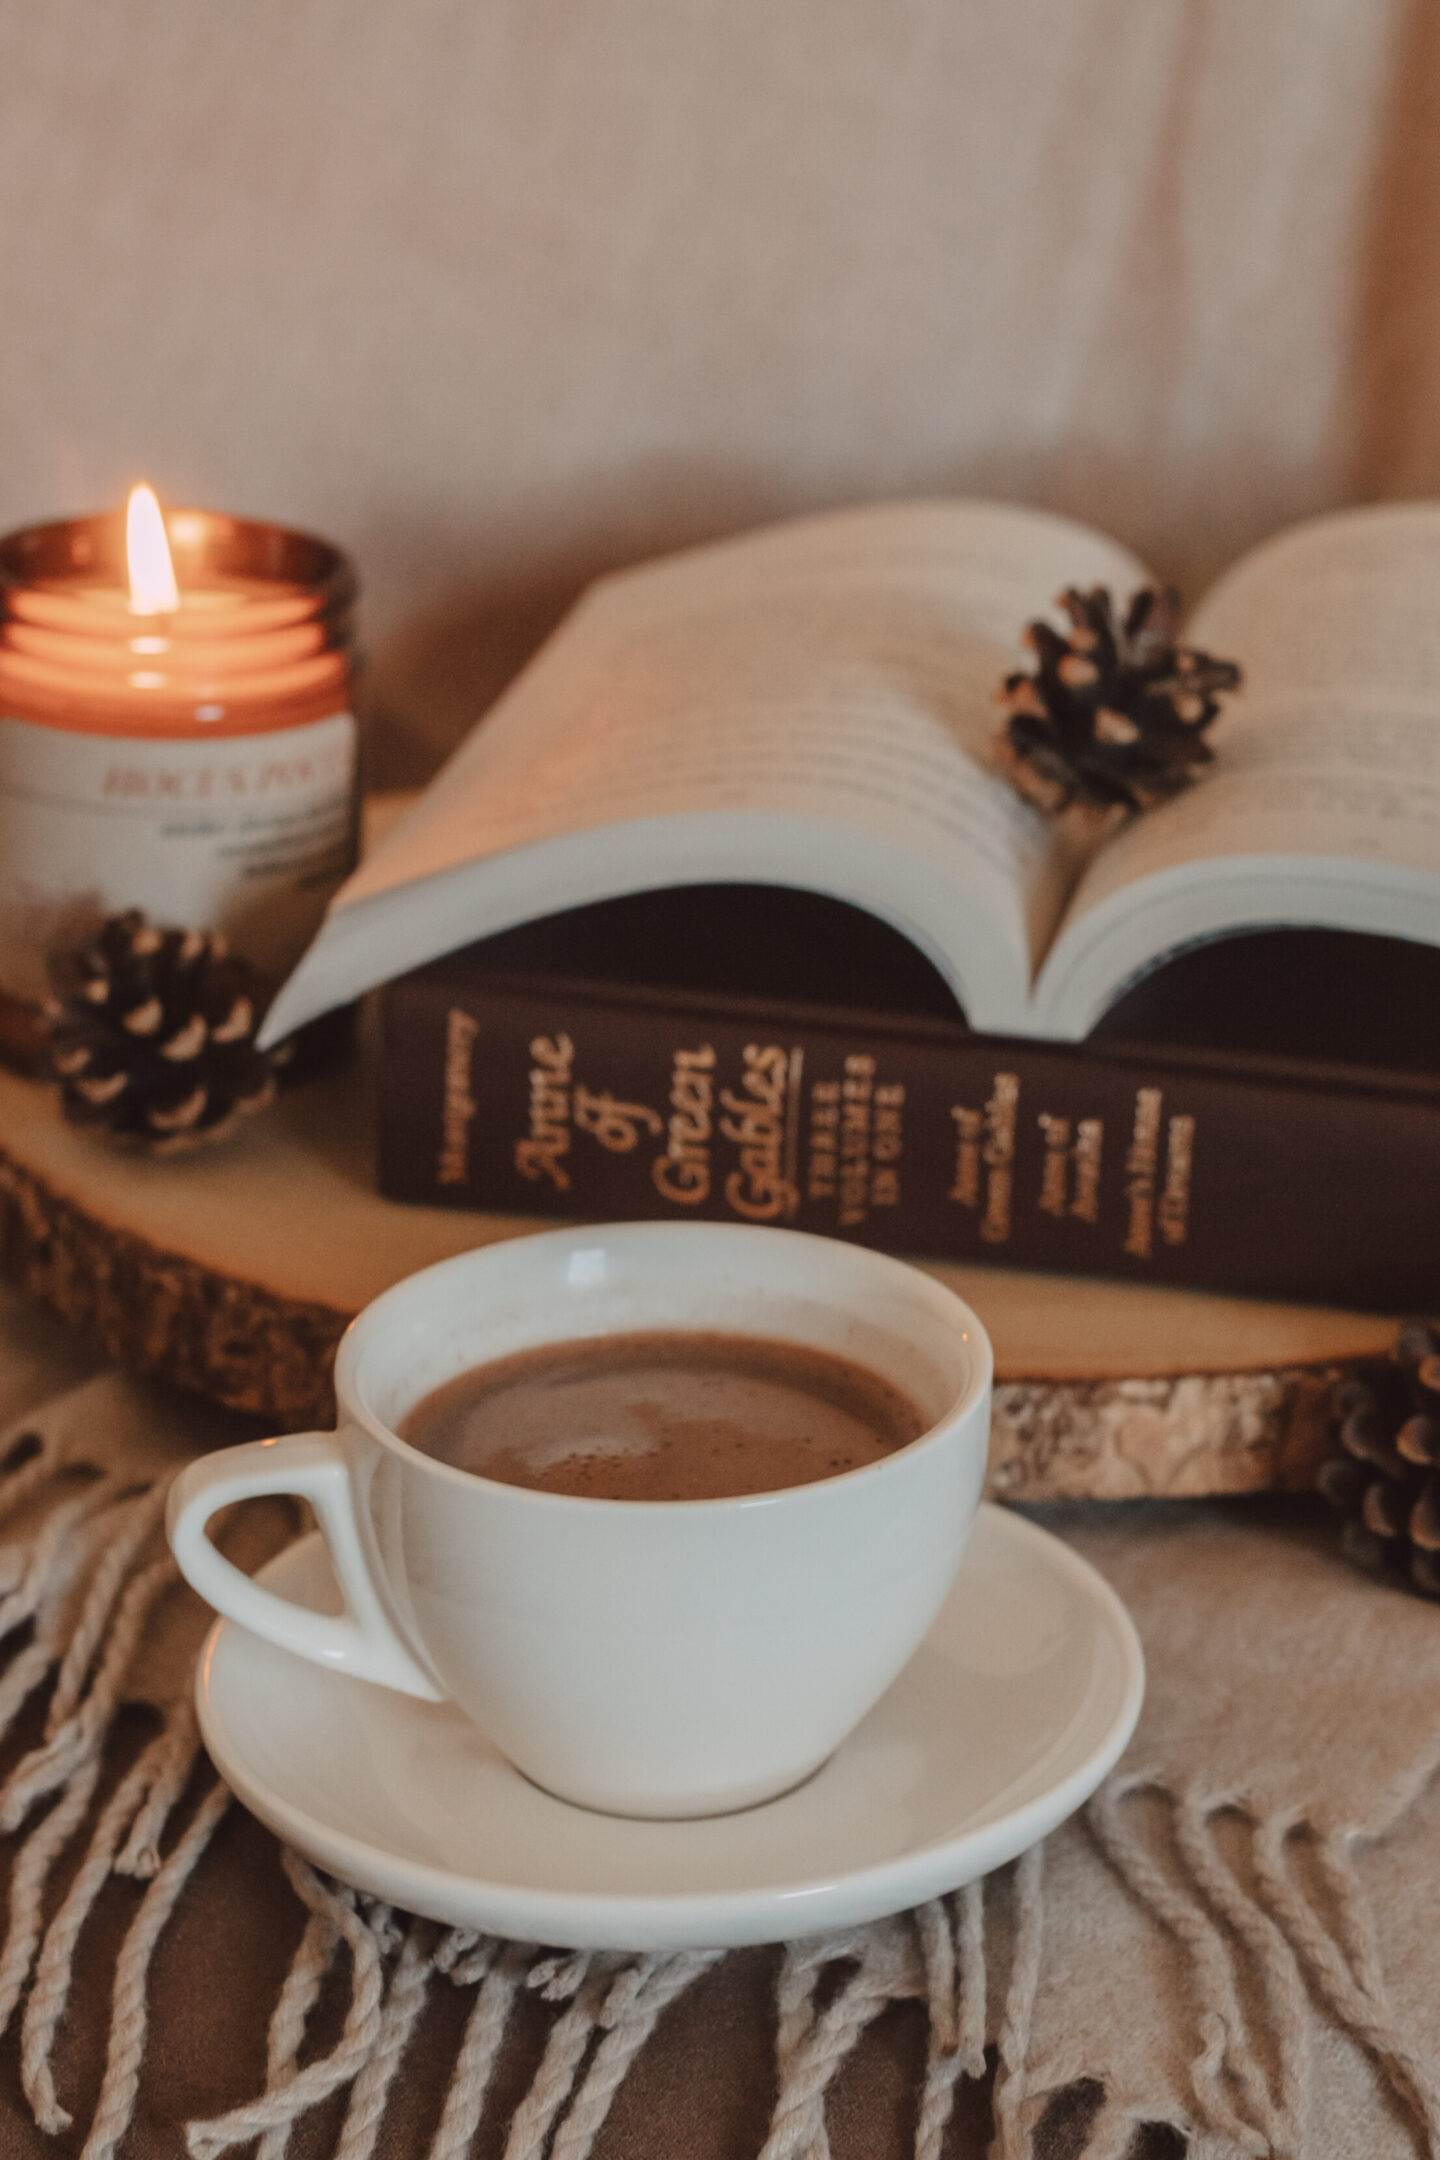 mug of mocha in front of vintage copy of anne of green gables book with a burning candle and pinecones